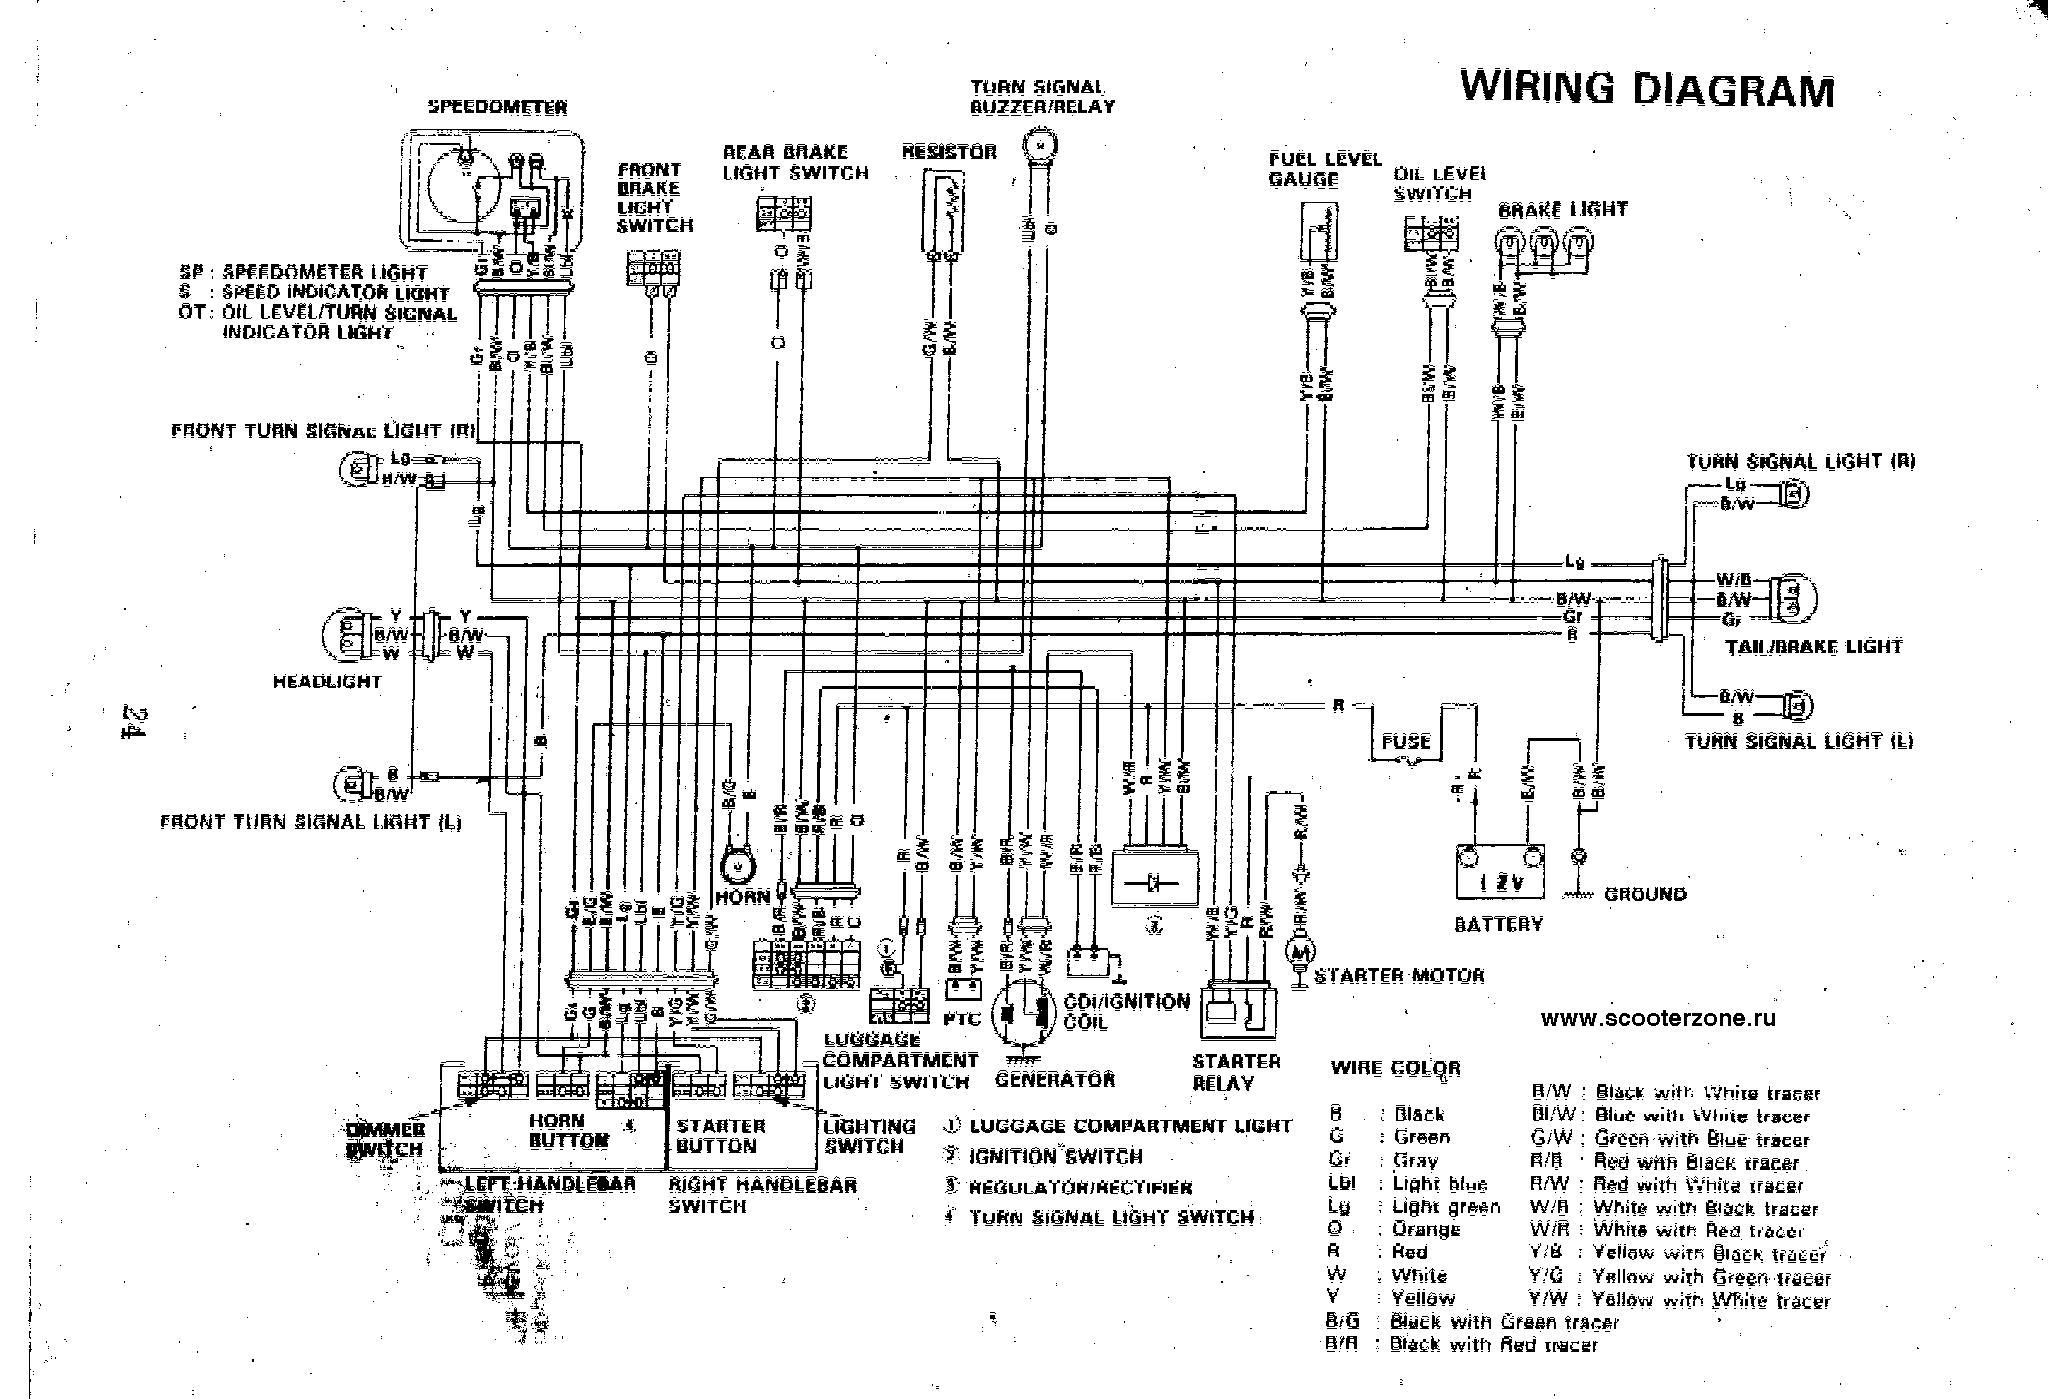 suzuki - motorcycles manual pdf, wiring diagram & fault codes  motorcycle manuals news